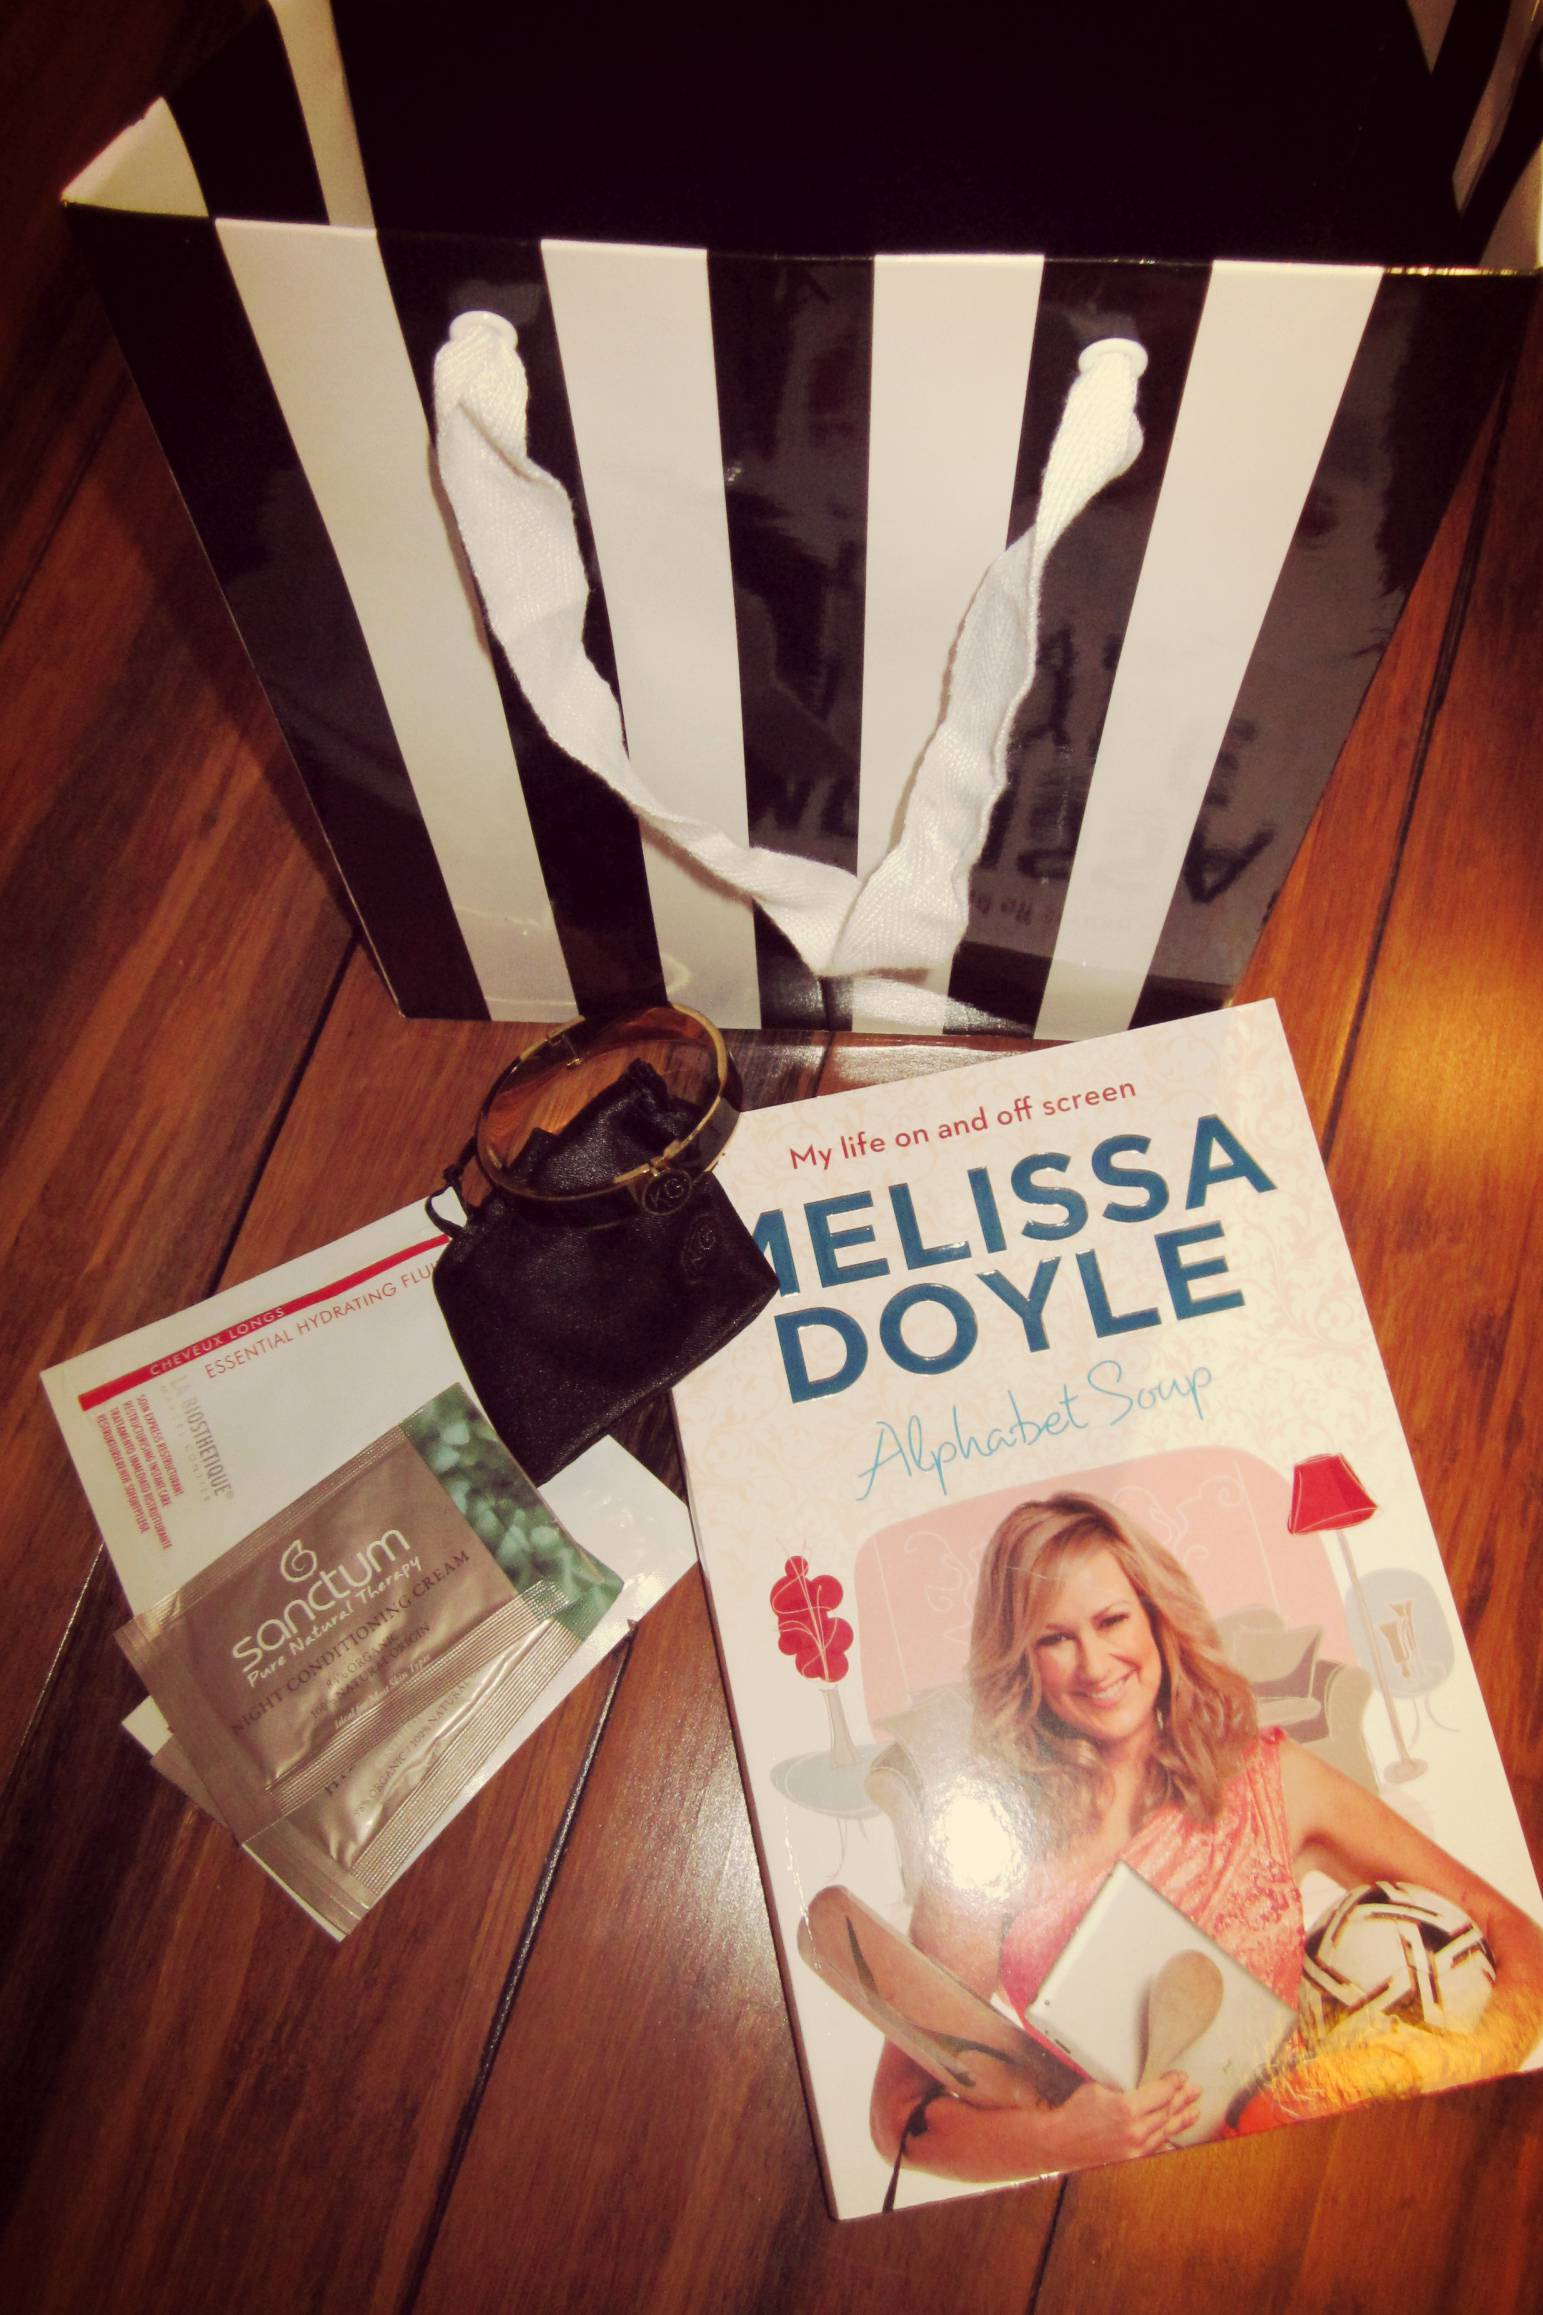 Campaign Confidence gift bag, including a signed copy of Melissa Doyle's new book and Karen Gee's signature bracelet.